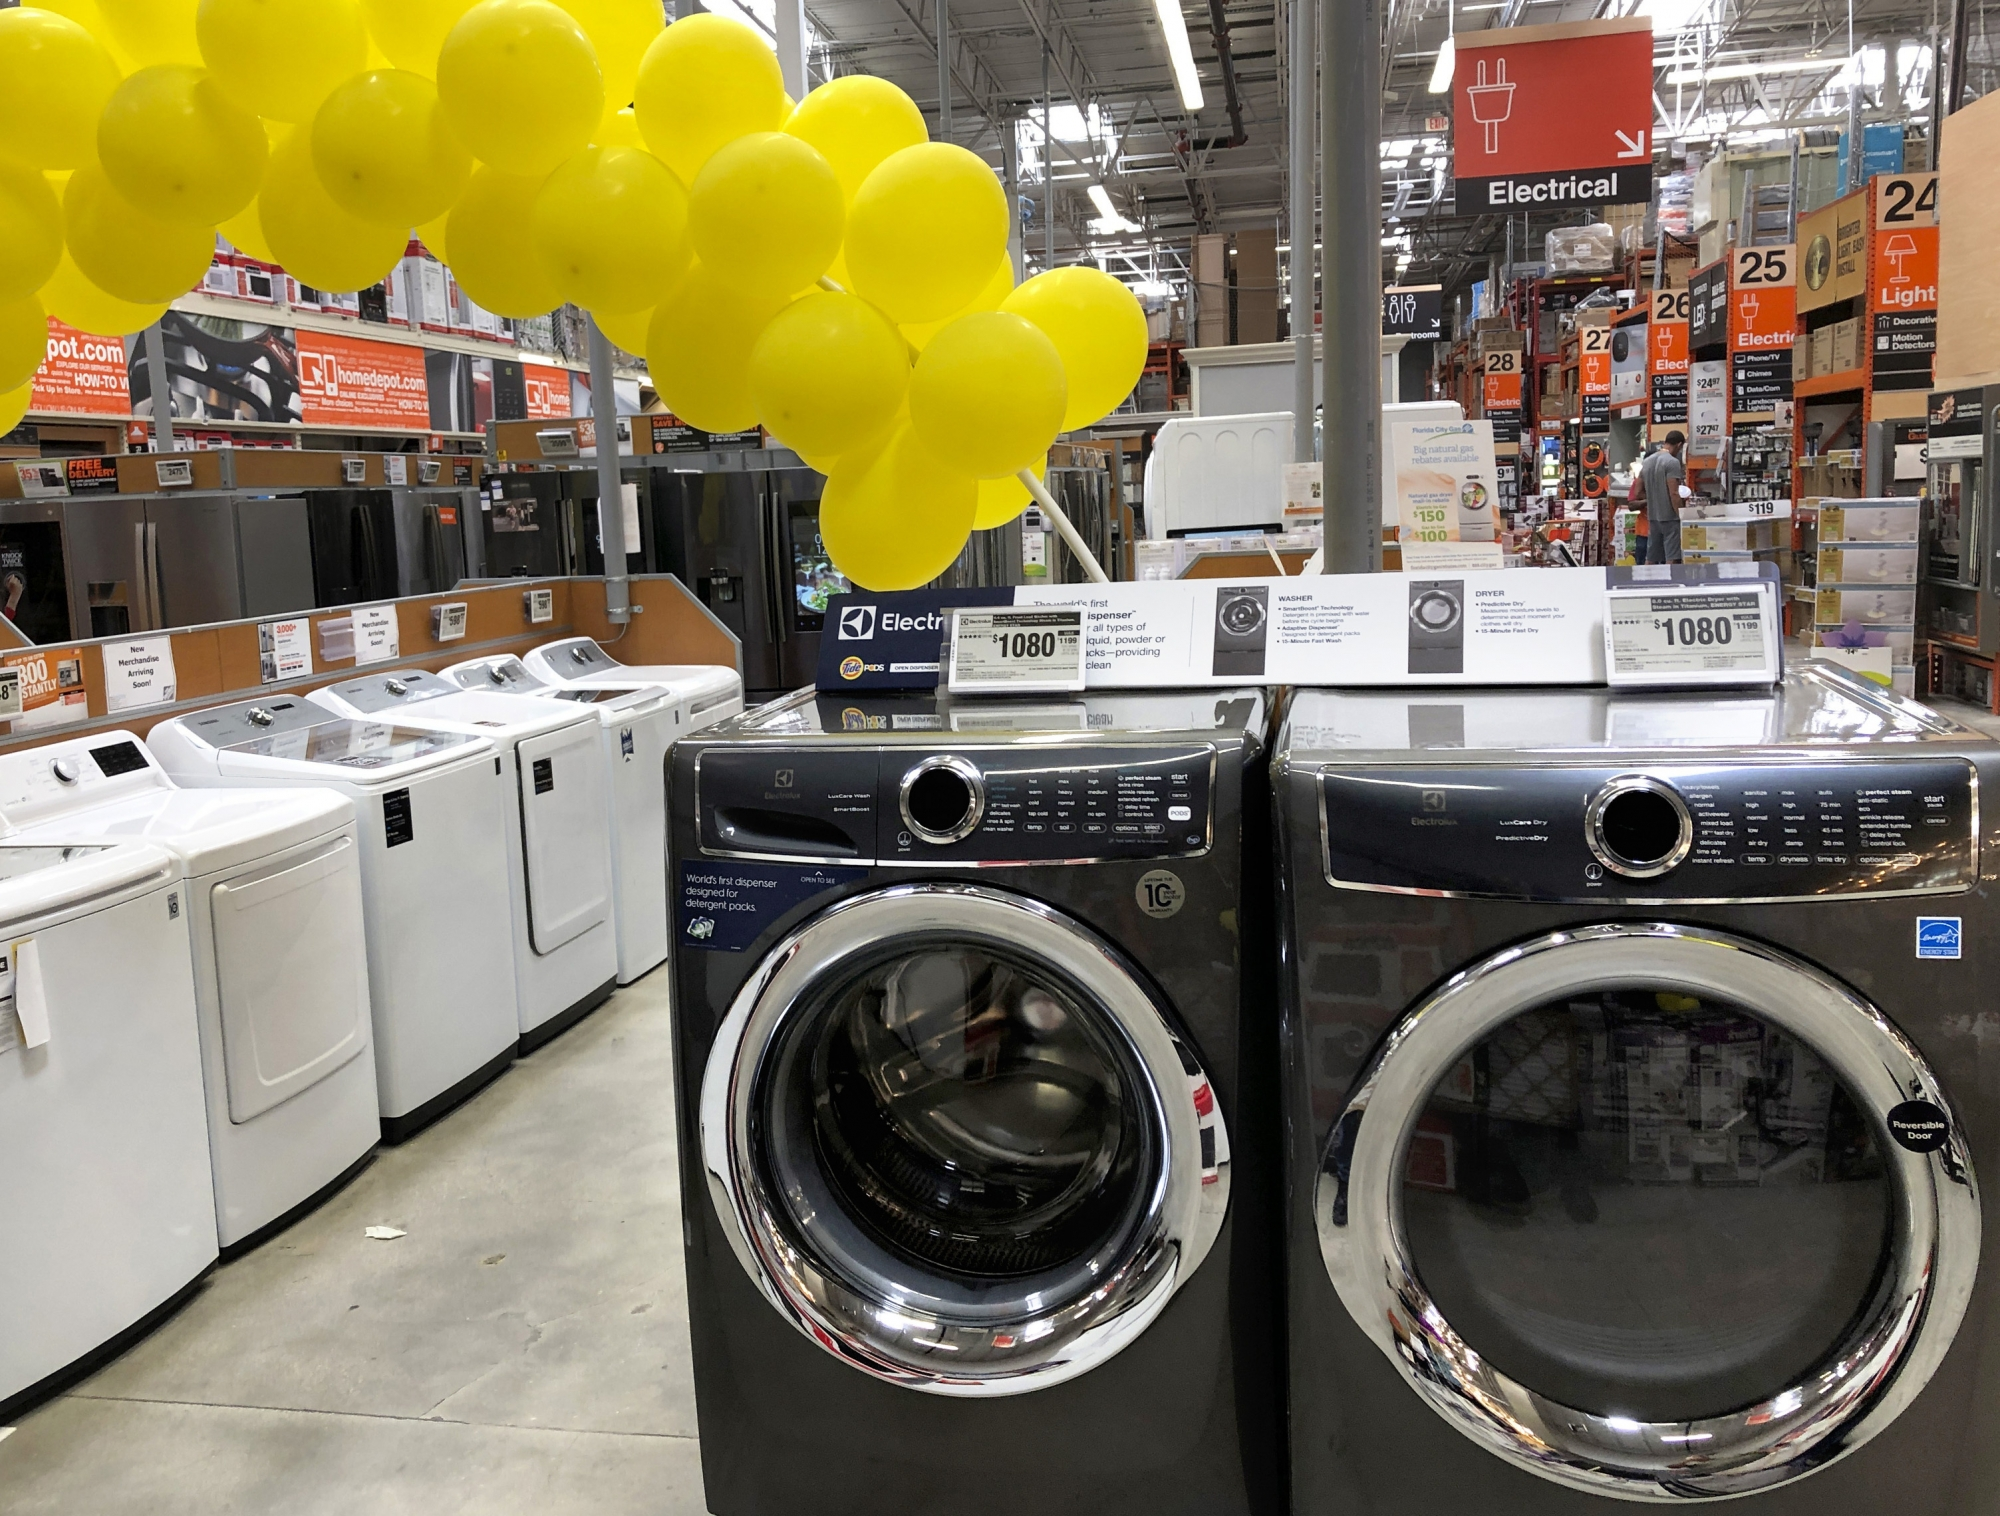 Us Durable Goods Orders Up Solid 2 7 In March